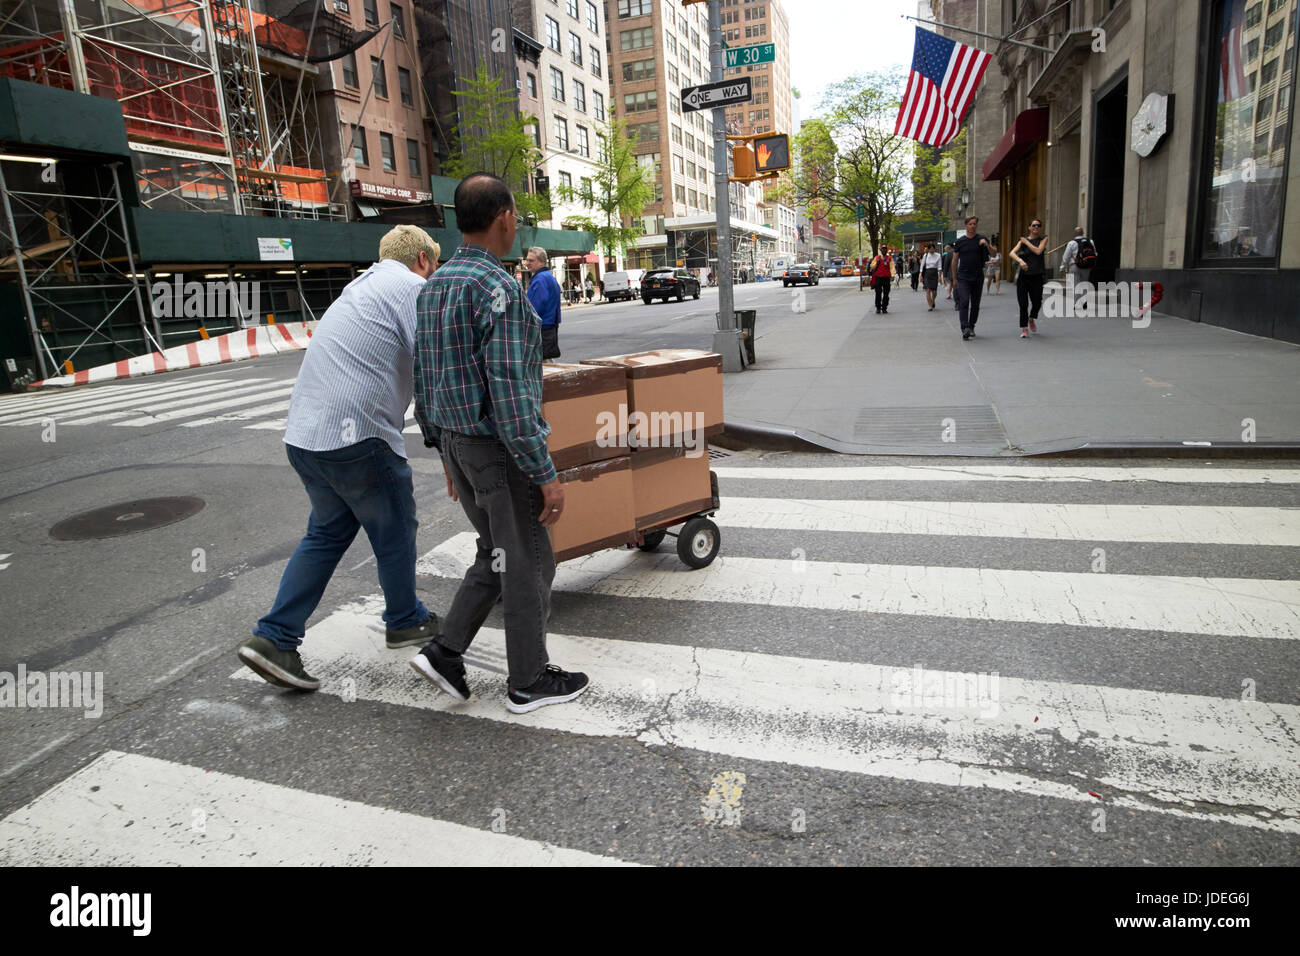 men pushing delivery cart across crosswalk in downtown midtown New York City USA - Stock Image